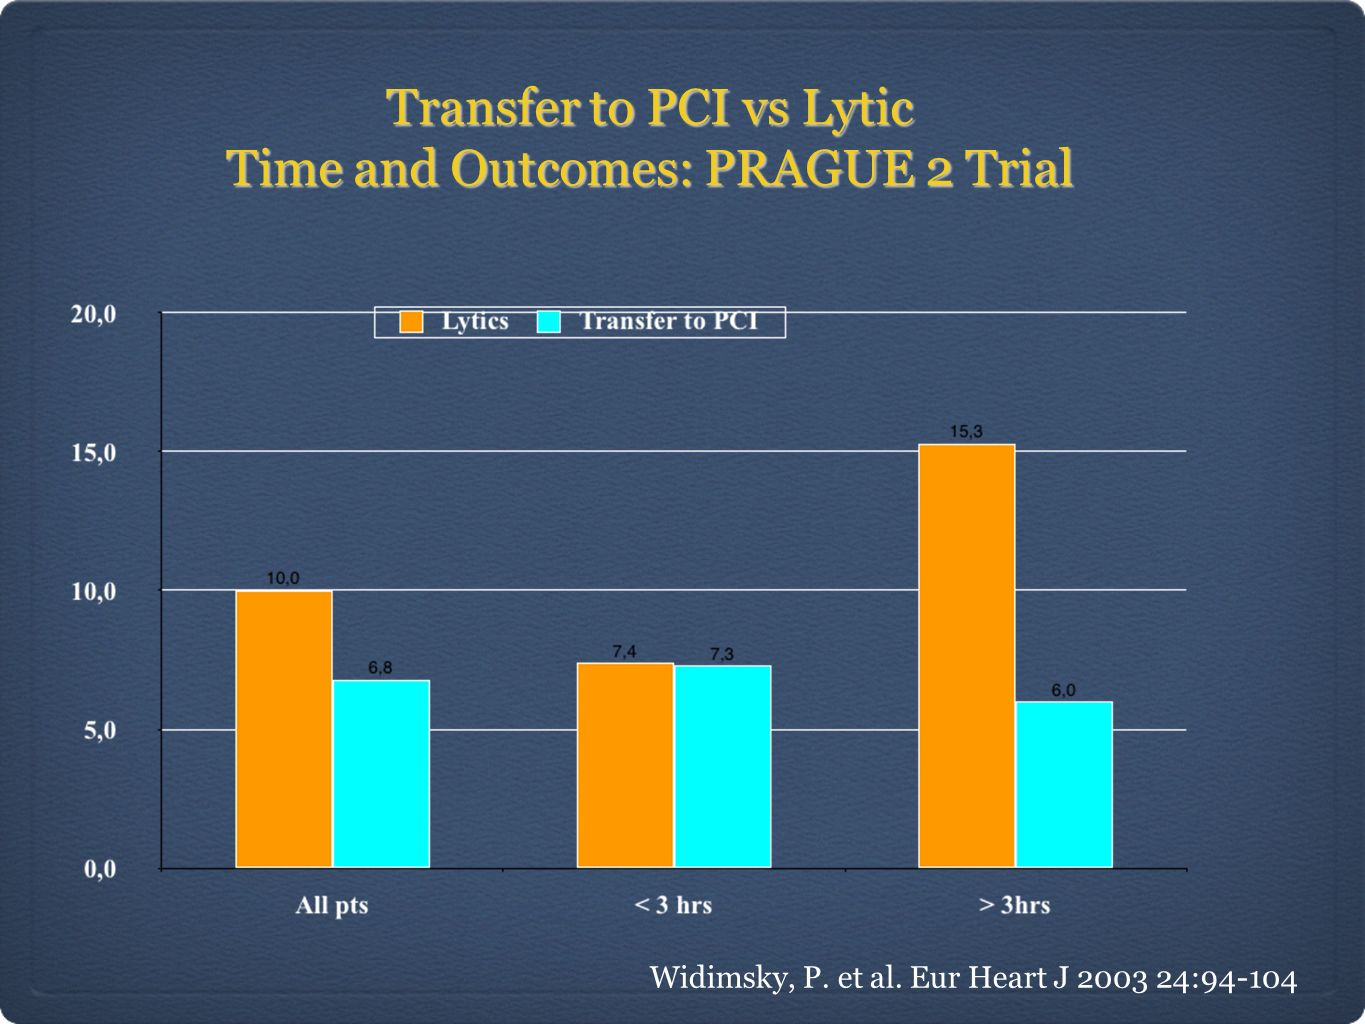 Transfer to PCI vs Lytic Time and Outcomes: PRAGUE 2 Trial